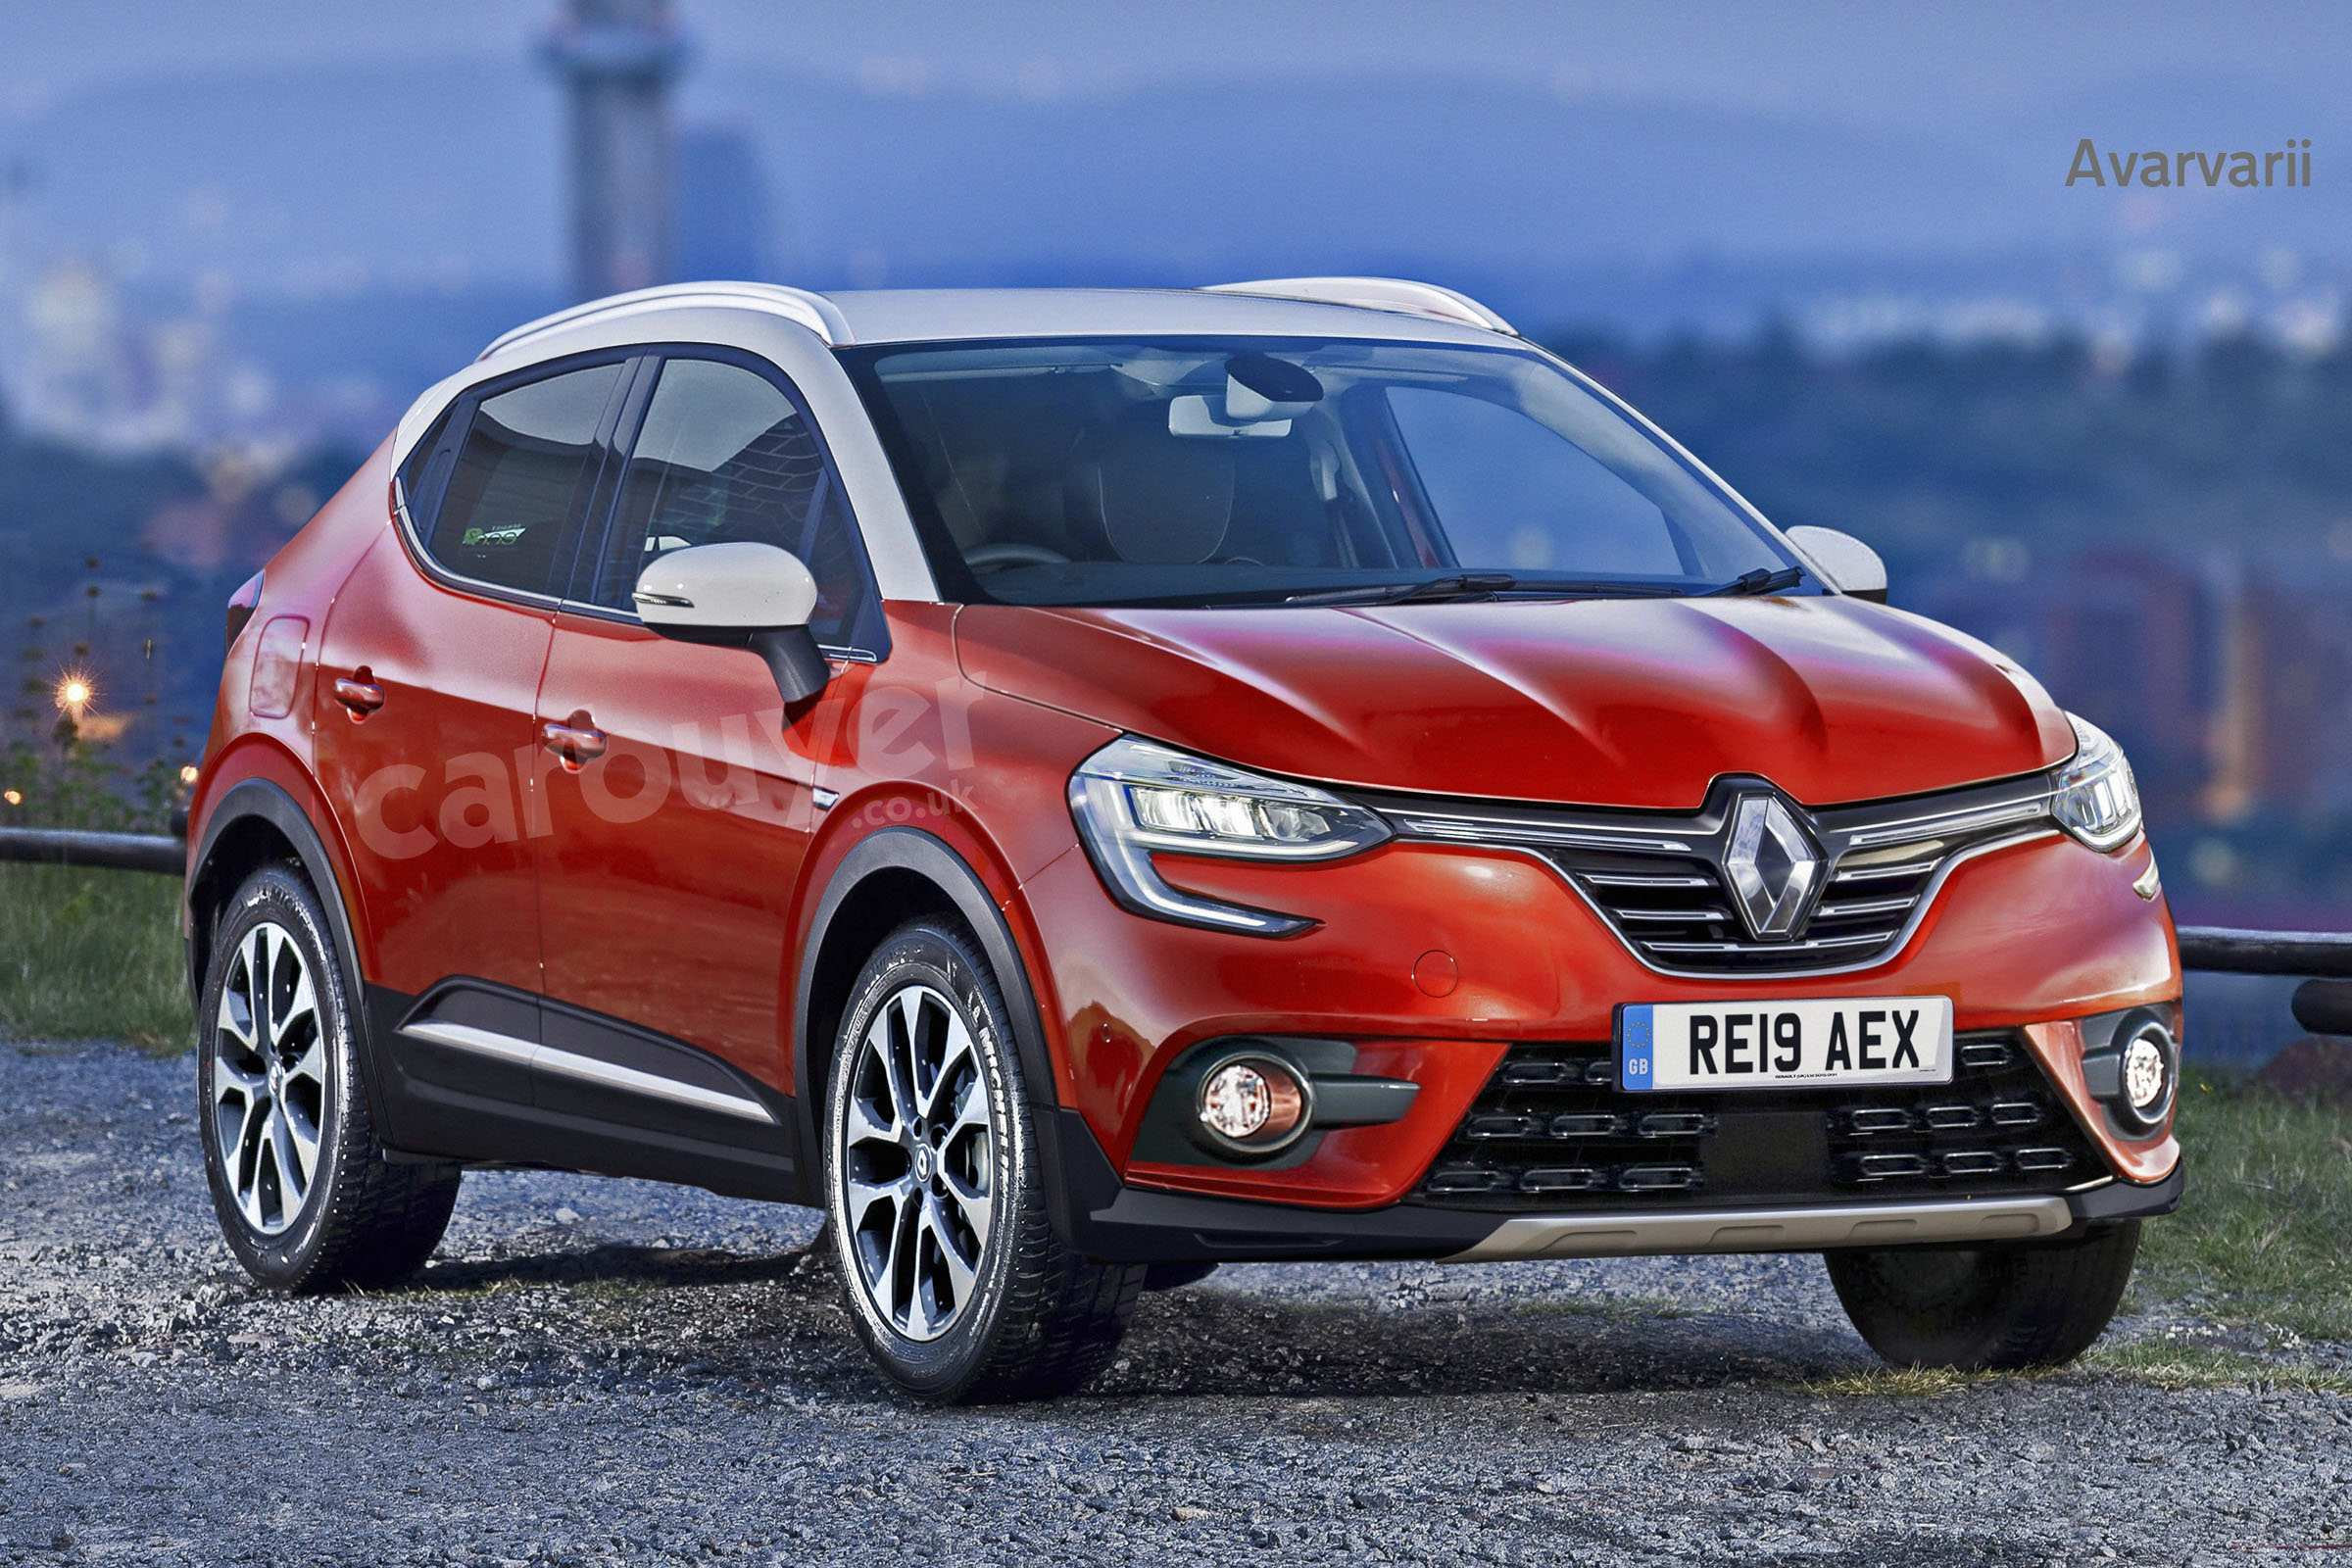 25 All New 2020 Renault Megane SUV Configurations with 2020 Renault Megane SUV